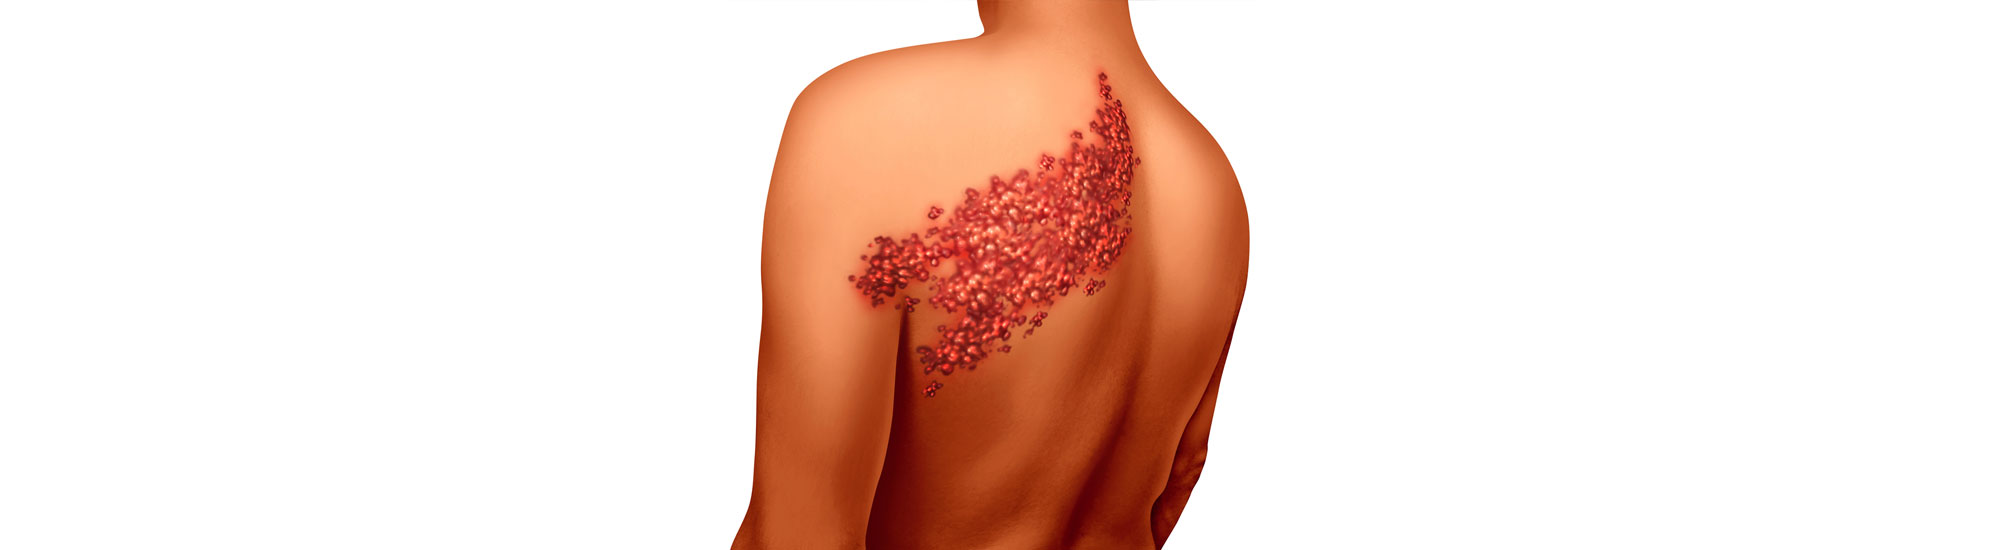 Ayurvedic treatment for Shingles FAQs